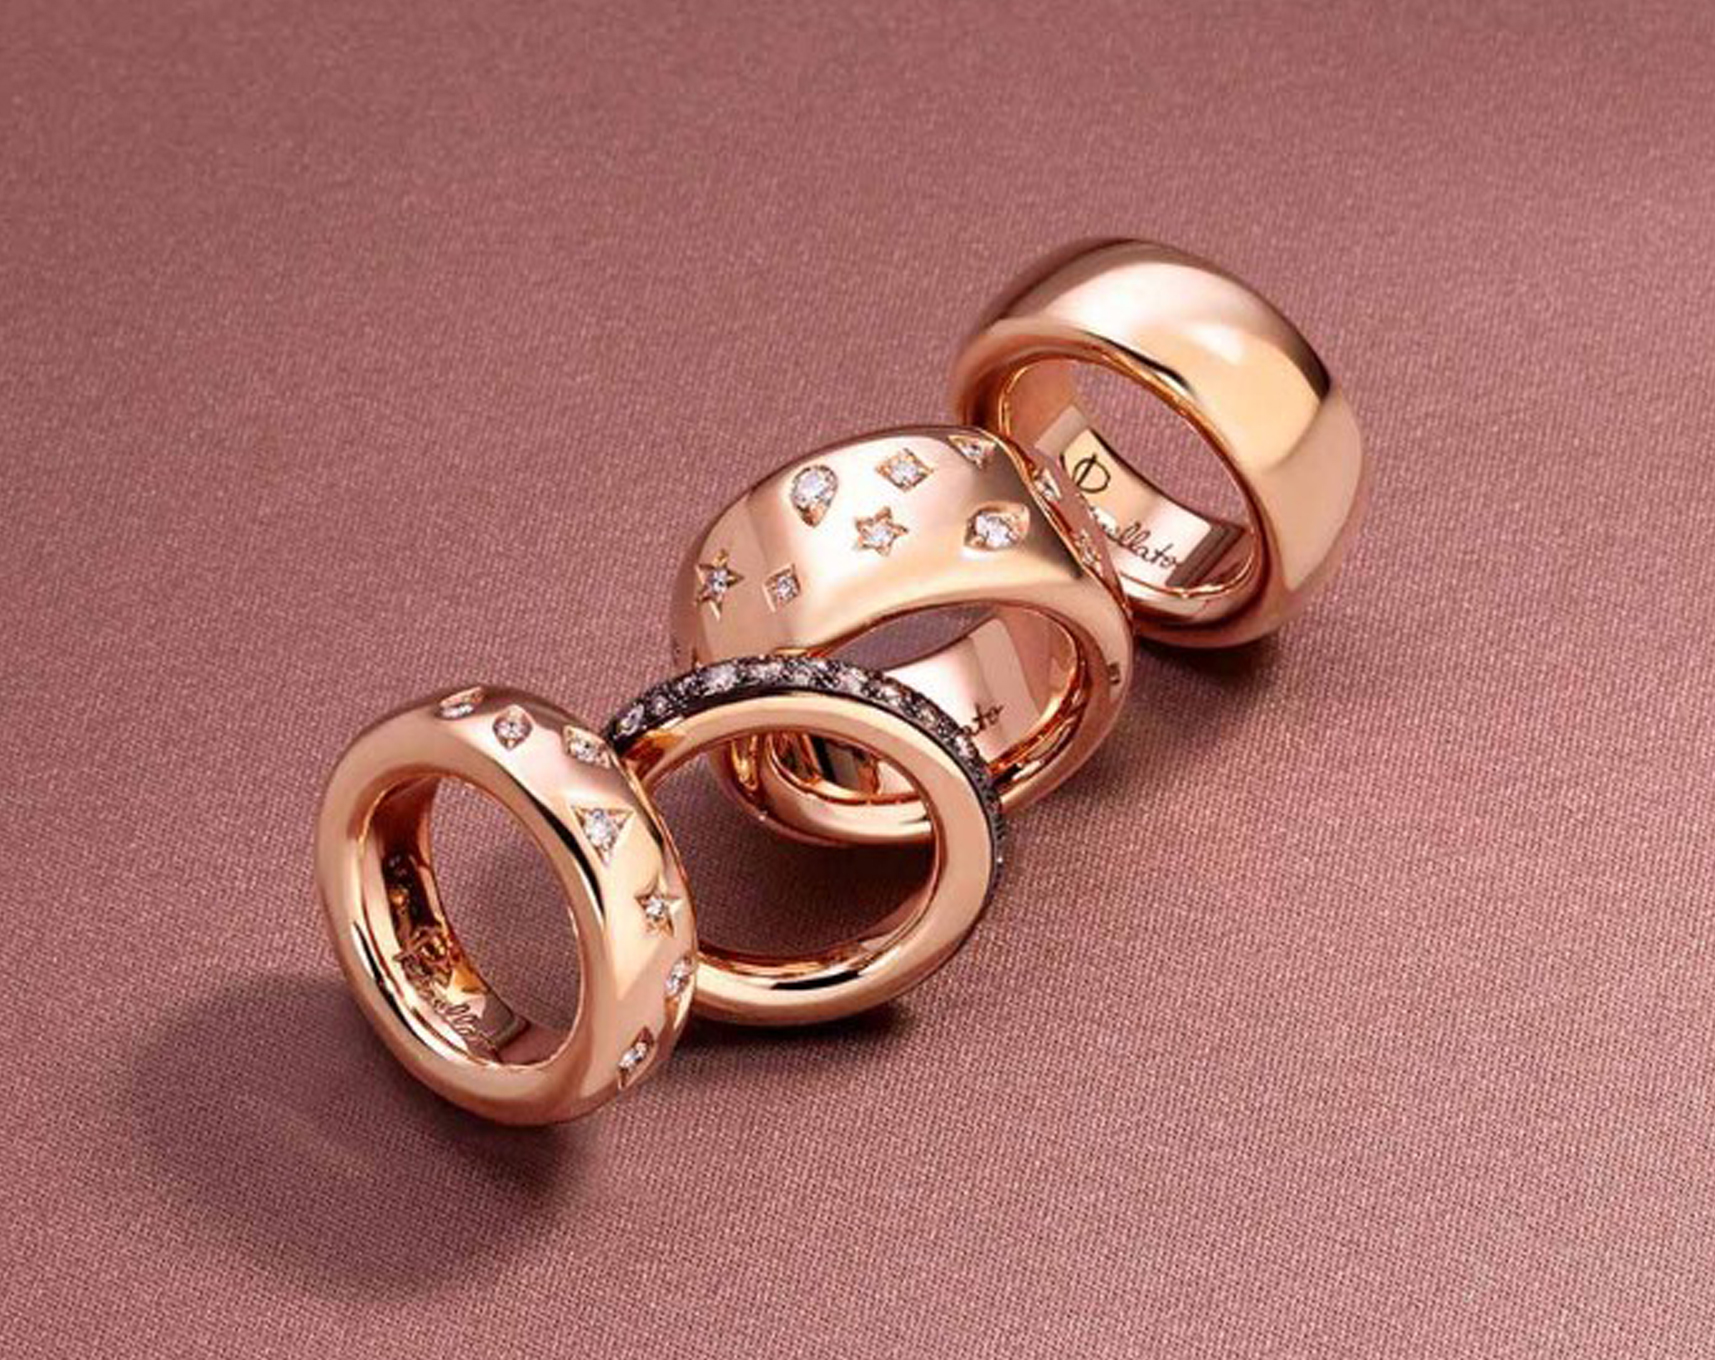 Pomellato - Collection Iconica - Vale Nice Joaillerie - paysage